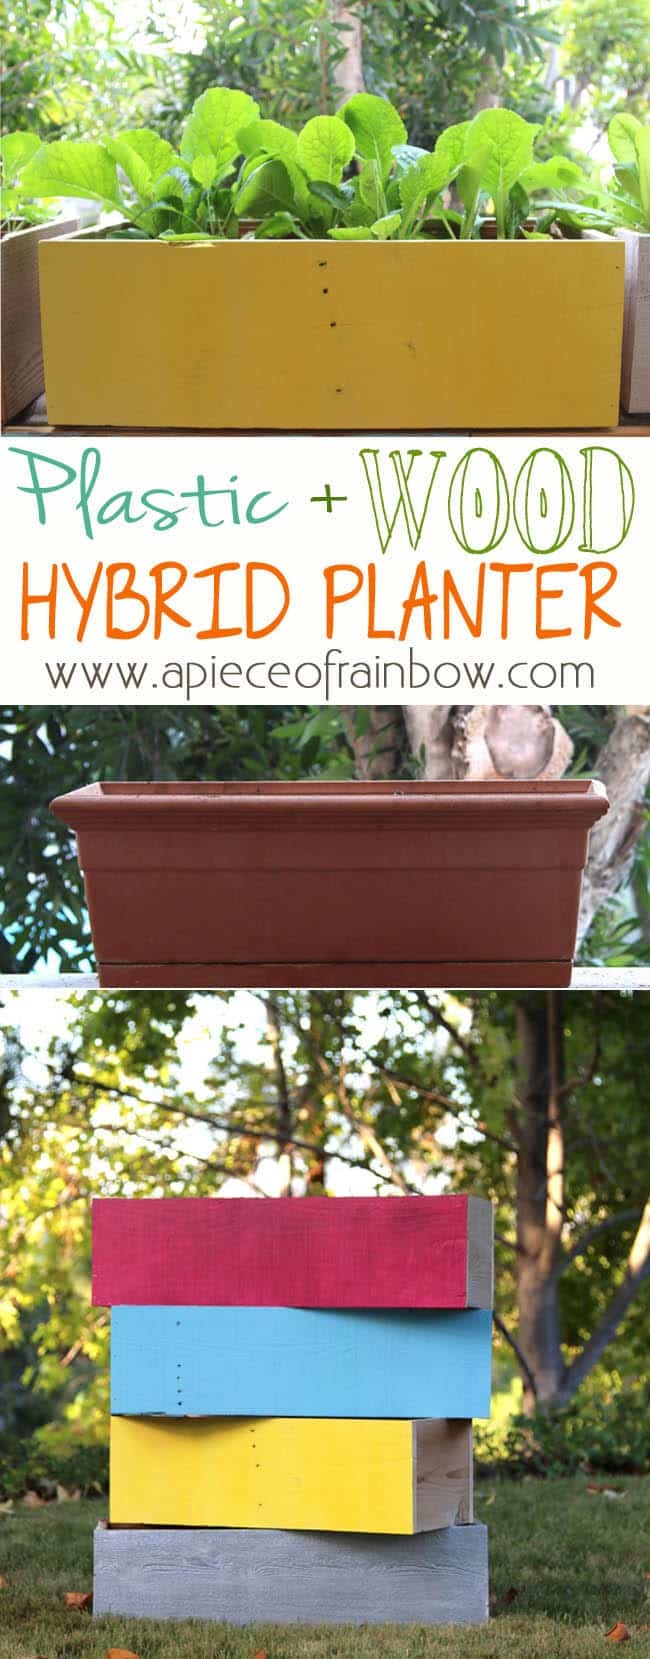 15 Out-of-the-box DIY Planter Ideas For Your Garden